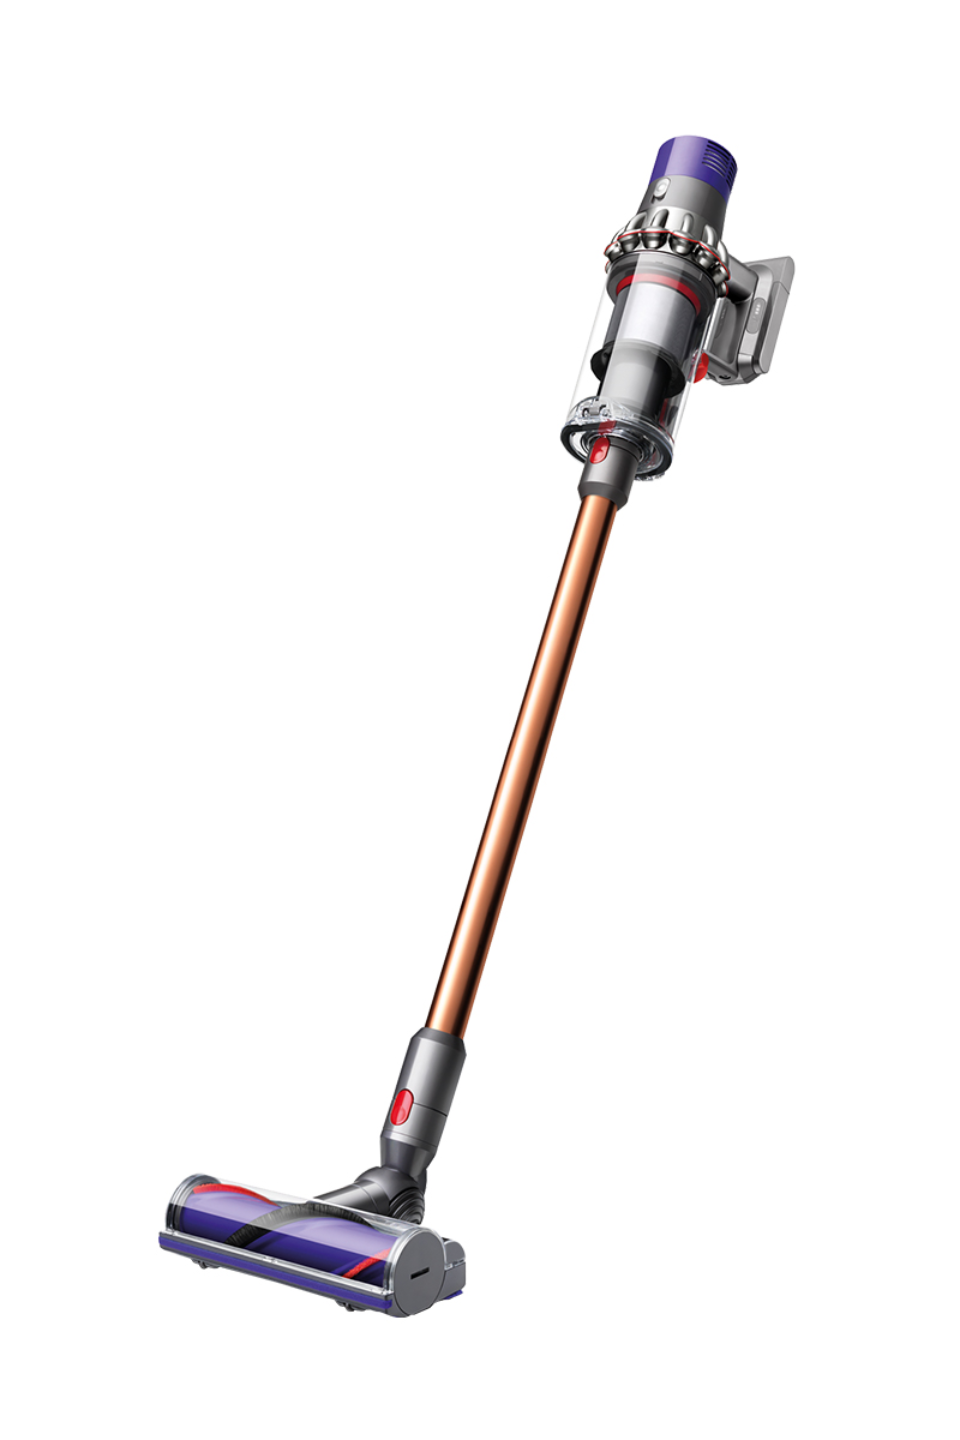 Dyson Cyclone V10 Absolute Pro | Tylko na Dyson.pl!